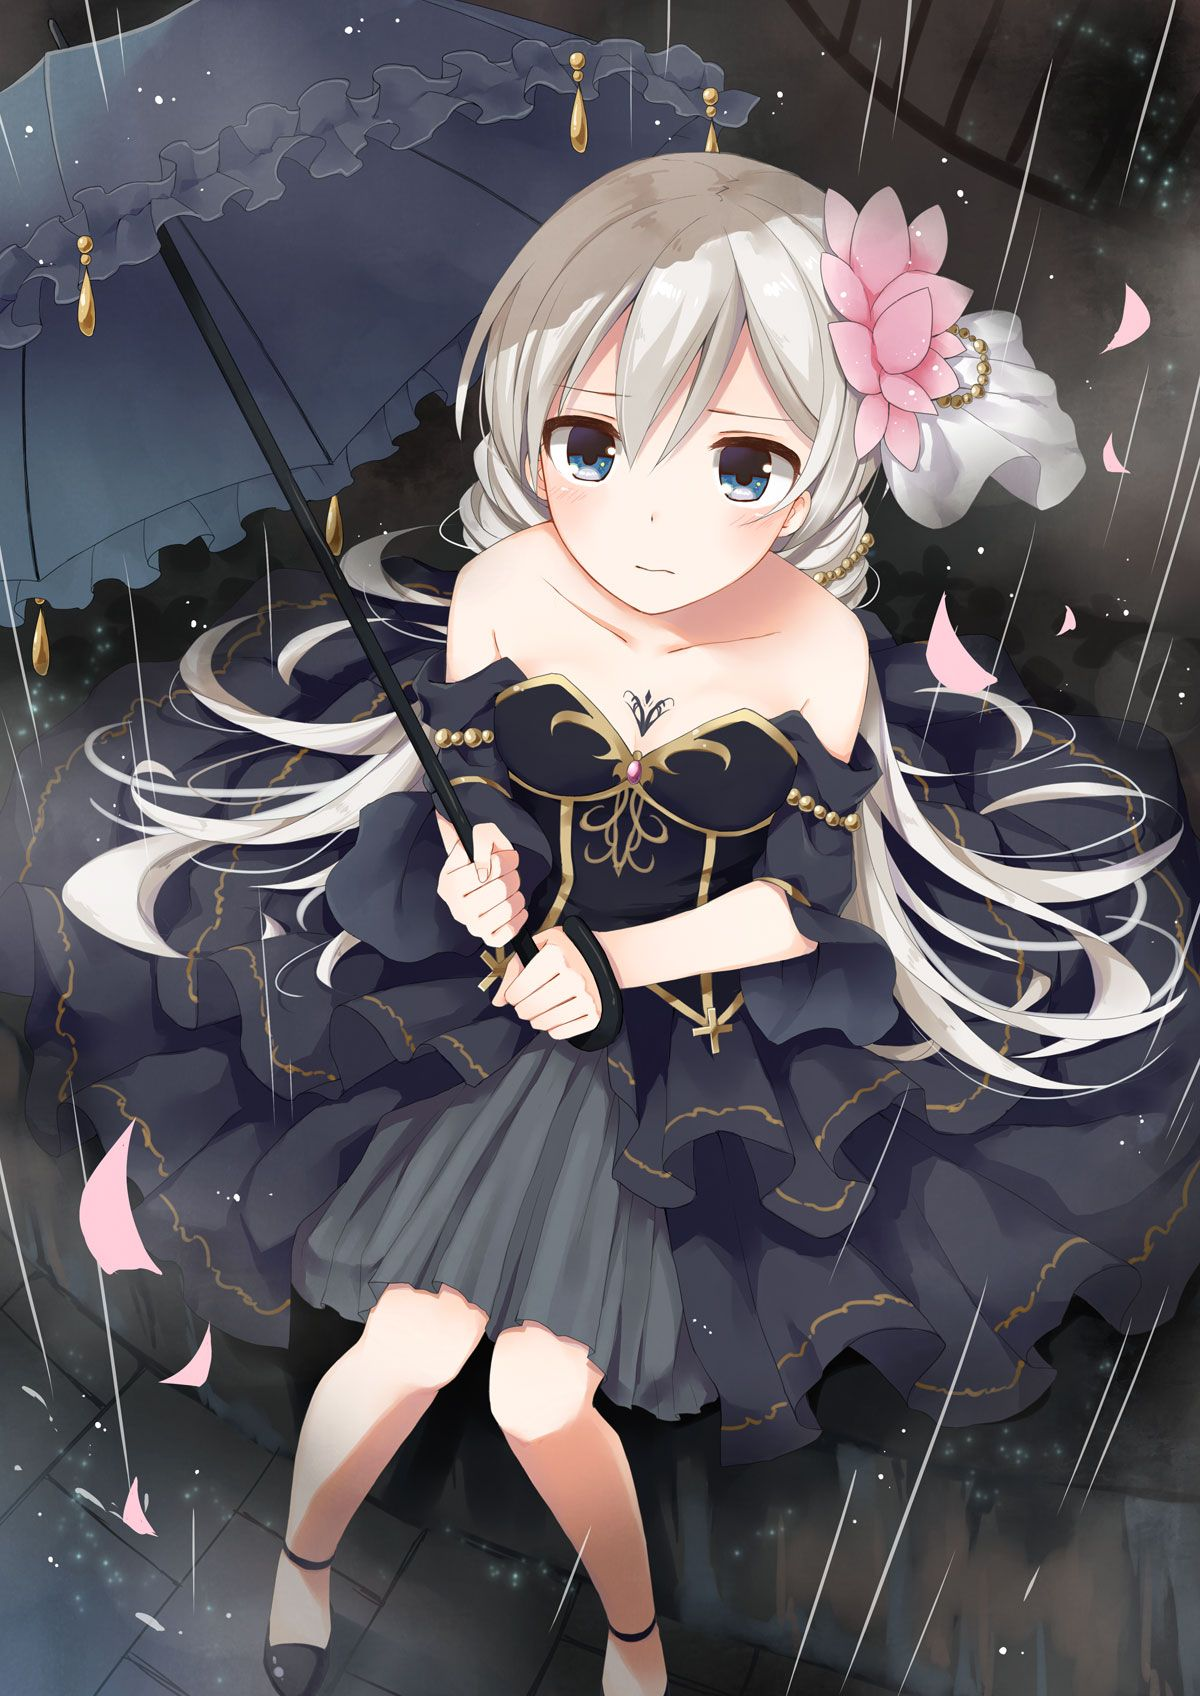 anime art in the rain rmal dress rset ffles